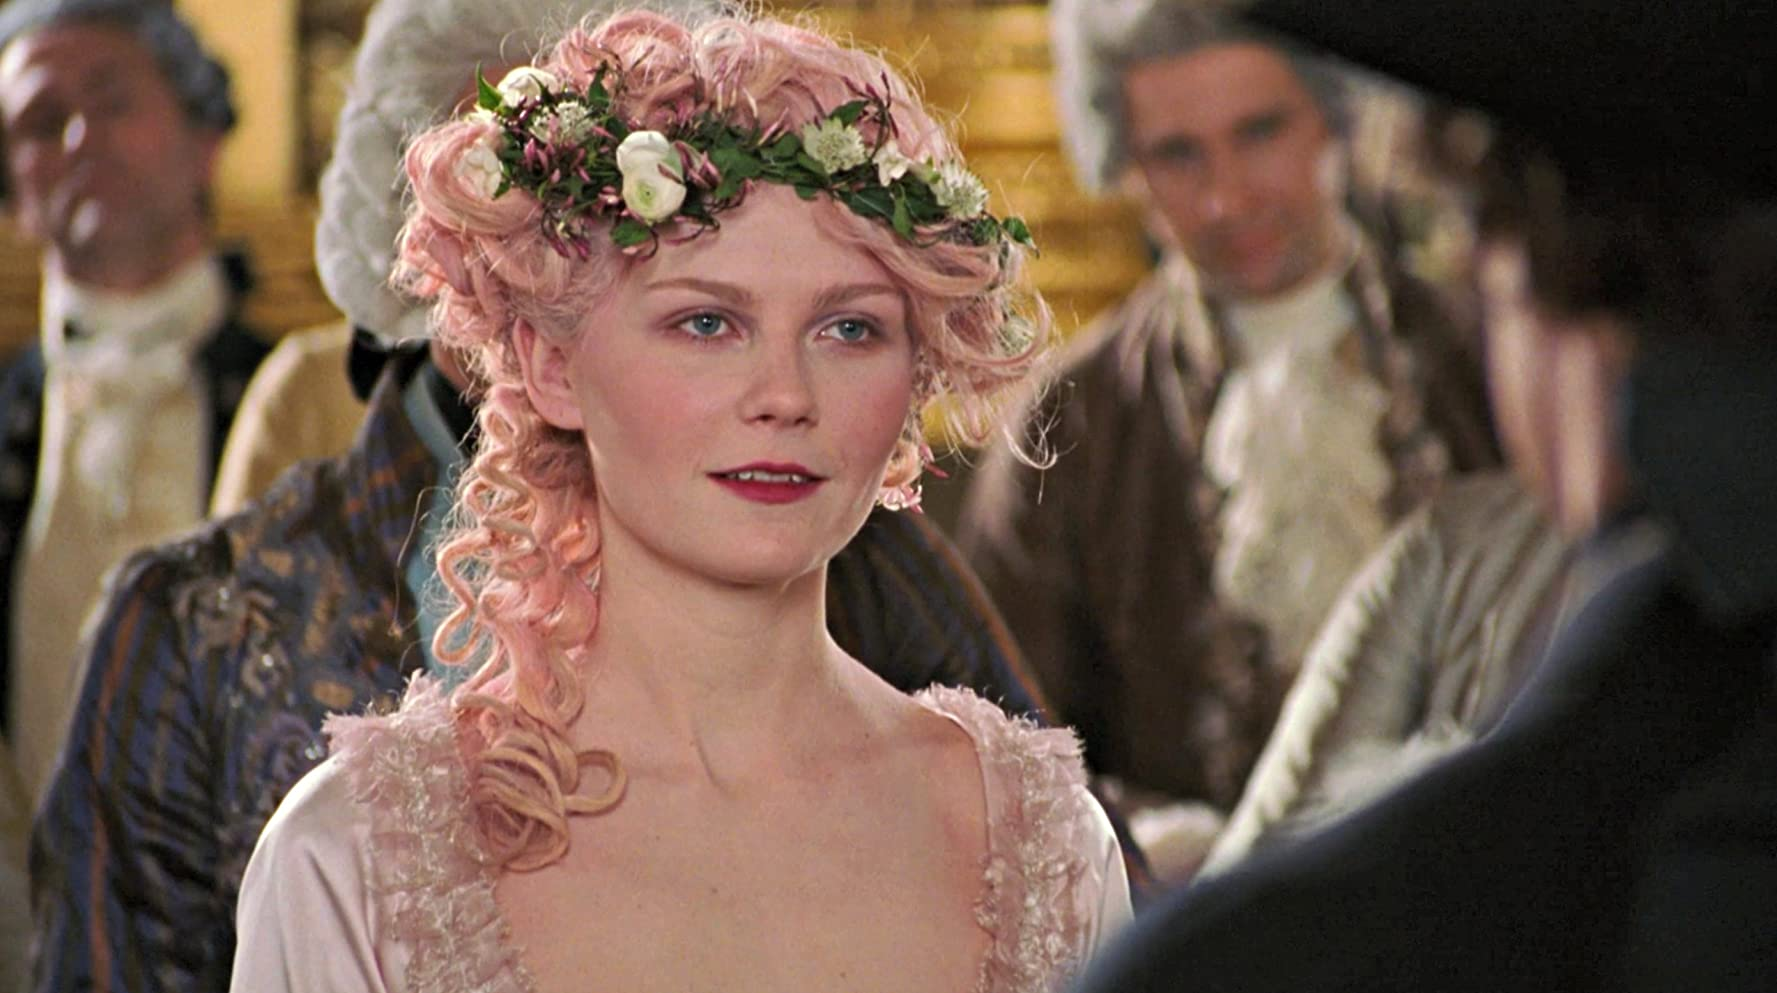 Kirsten Dunst in Marie Antoinette (2006). A close up of Marie, dressed in a pale pink satin gown and her wig a matching dusty pink colour, adorned with a white flower wreath.